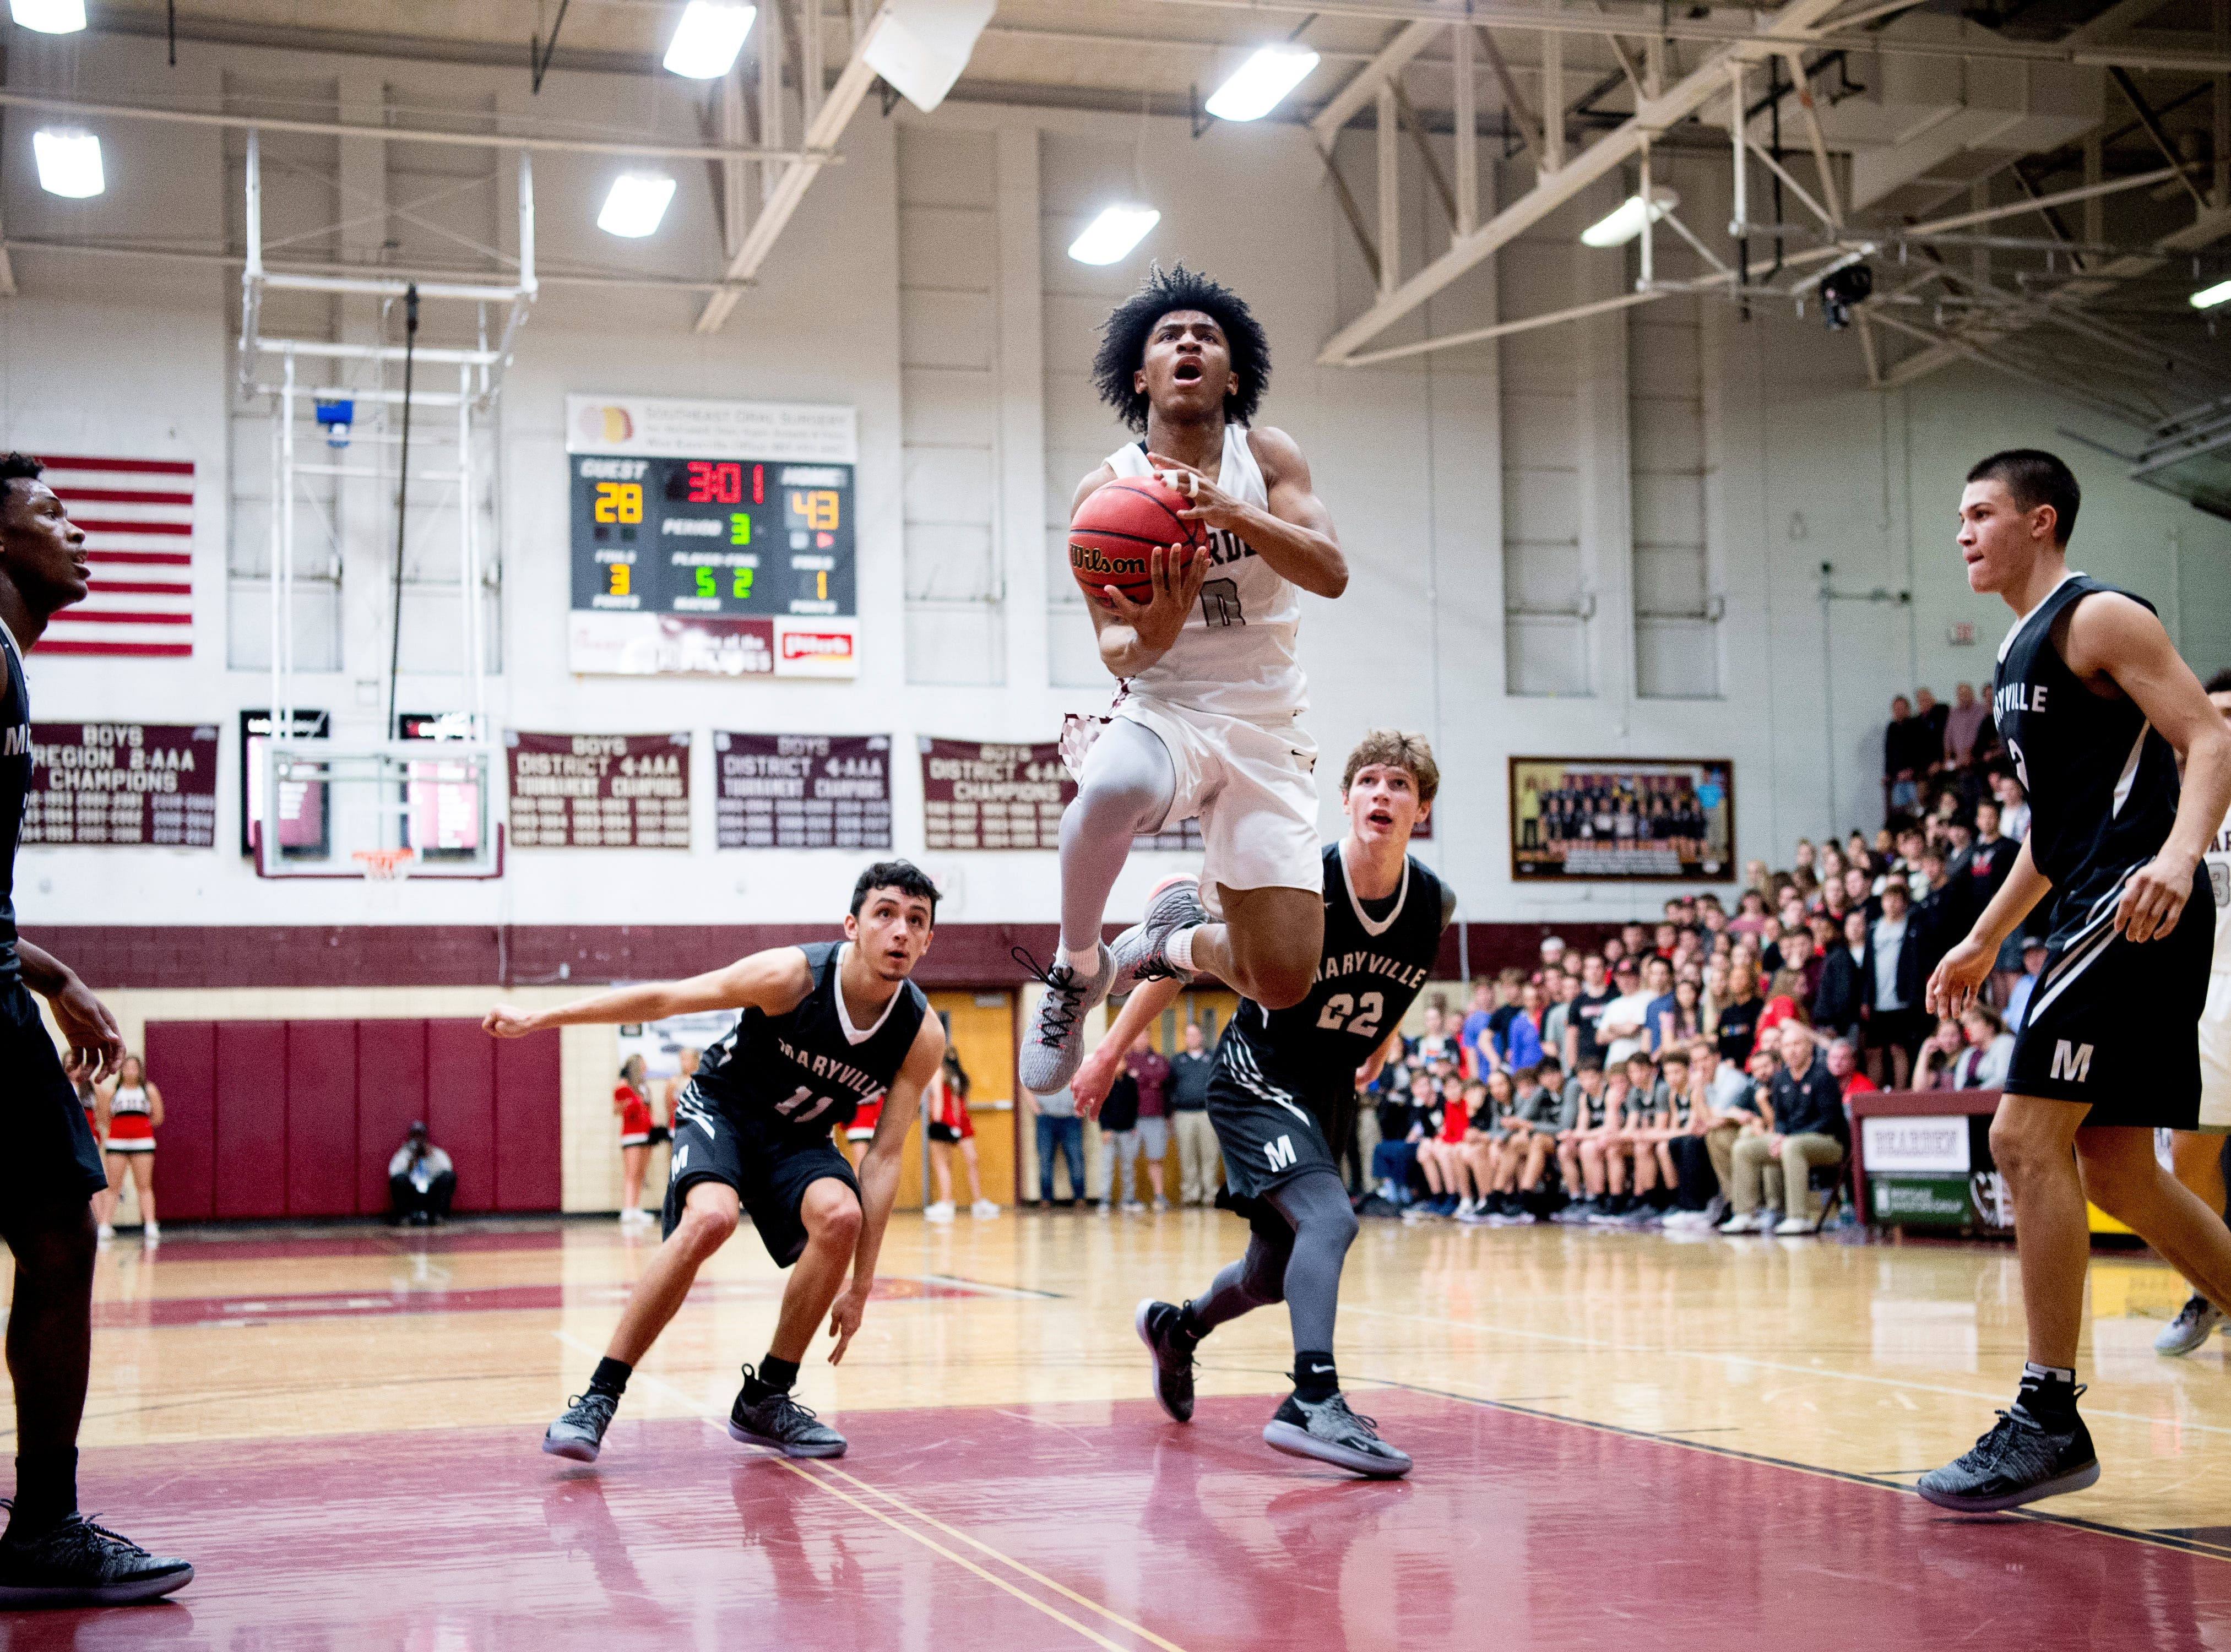 Bearden's Ques Glover (0) goes for a layup during a game between Bearden and Maryville at Bearden High School in Knoxville, Tennessee on Tuesday, February 5, 2019.